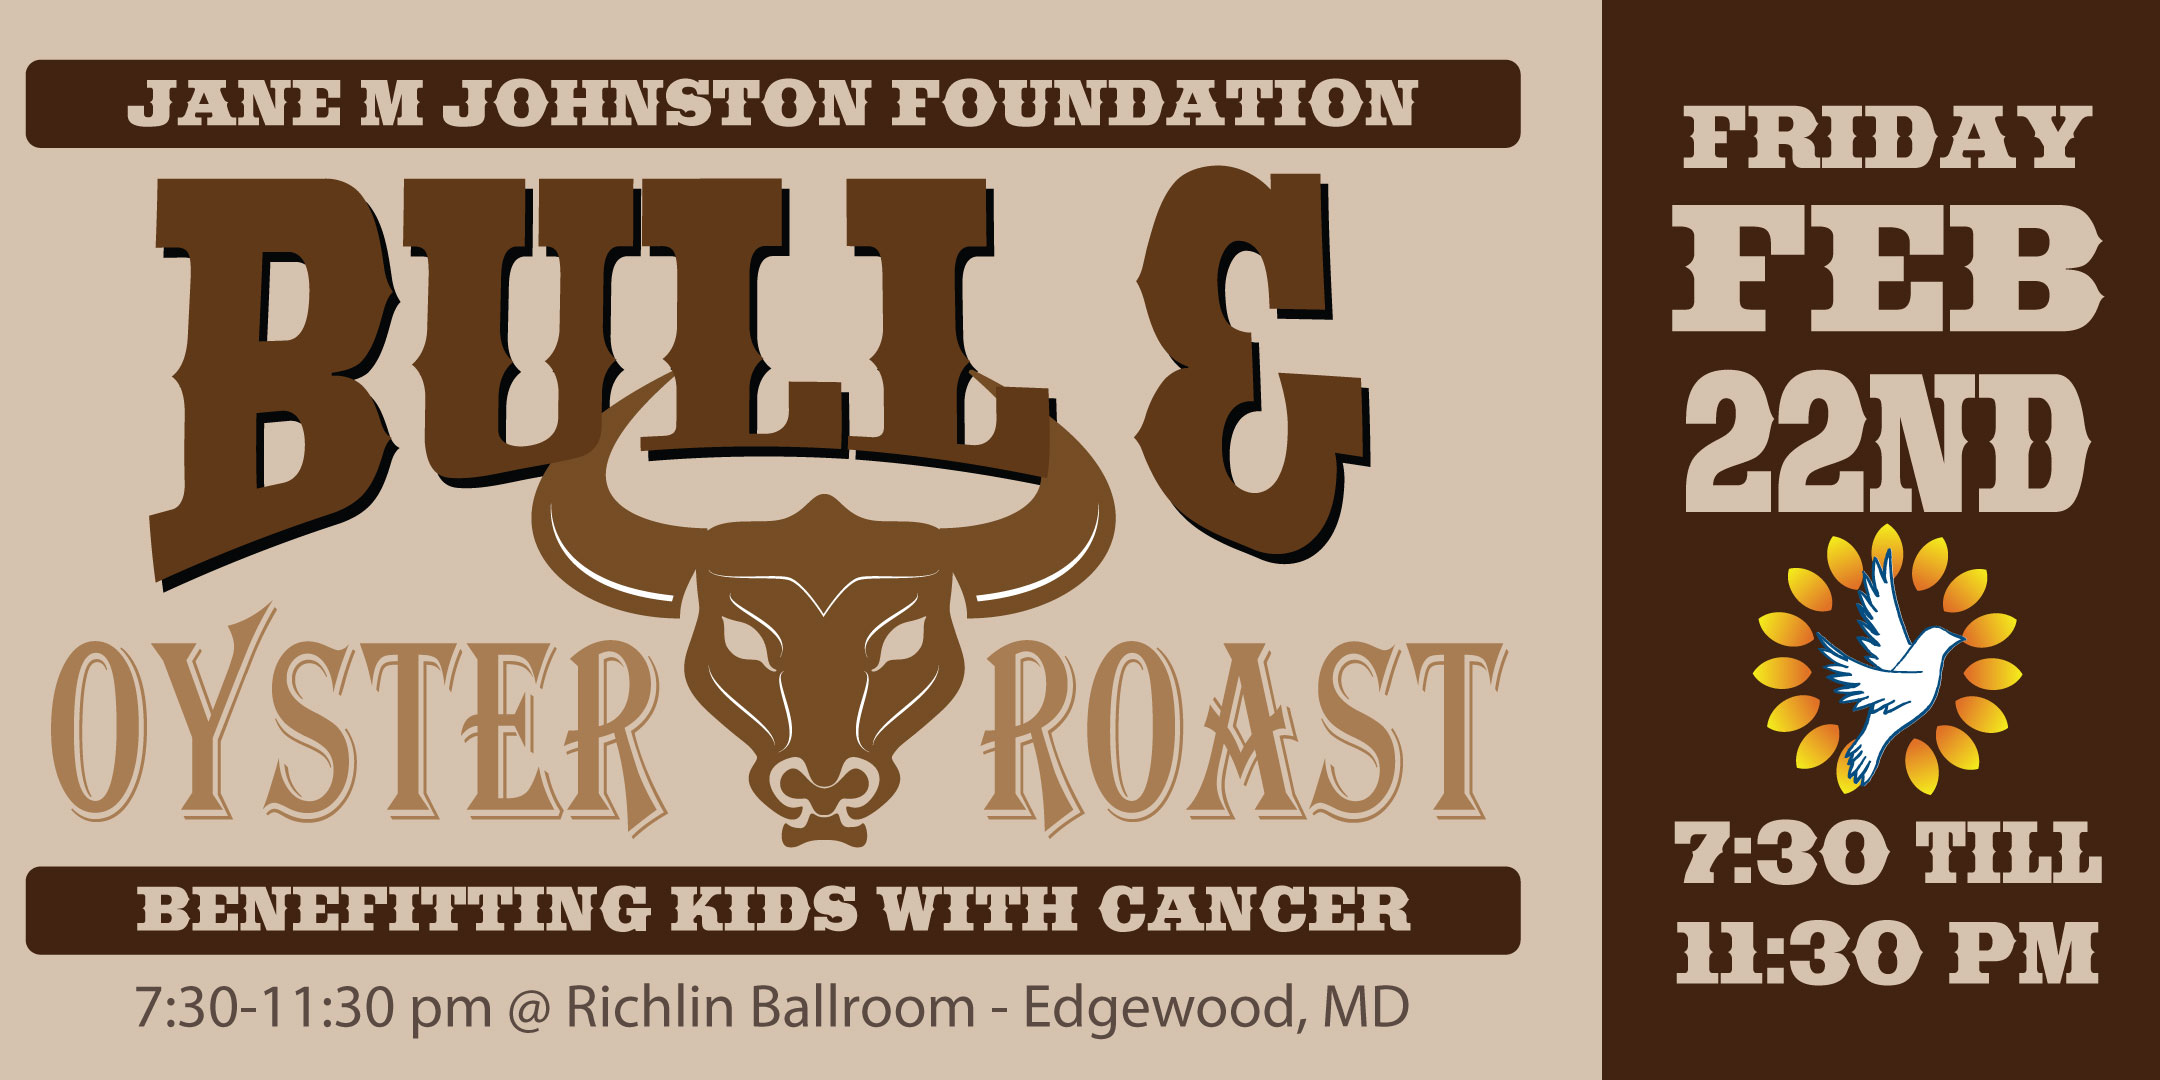 JMJ Bull Roast Invitation